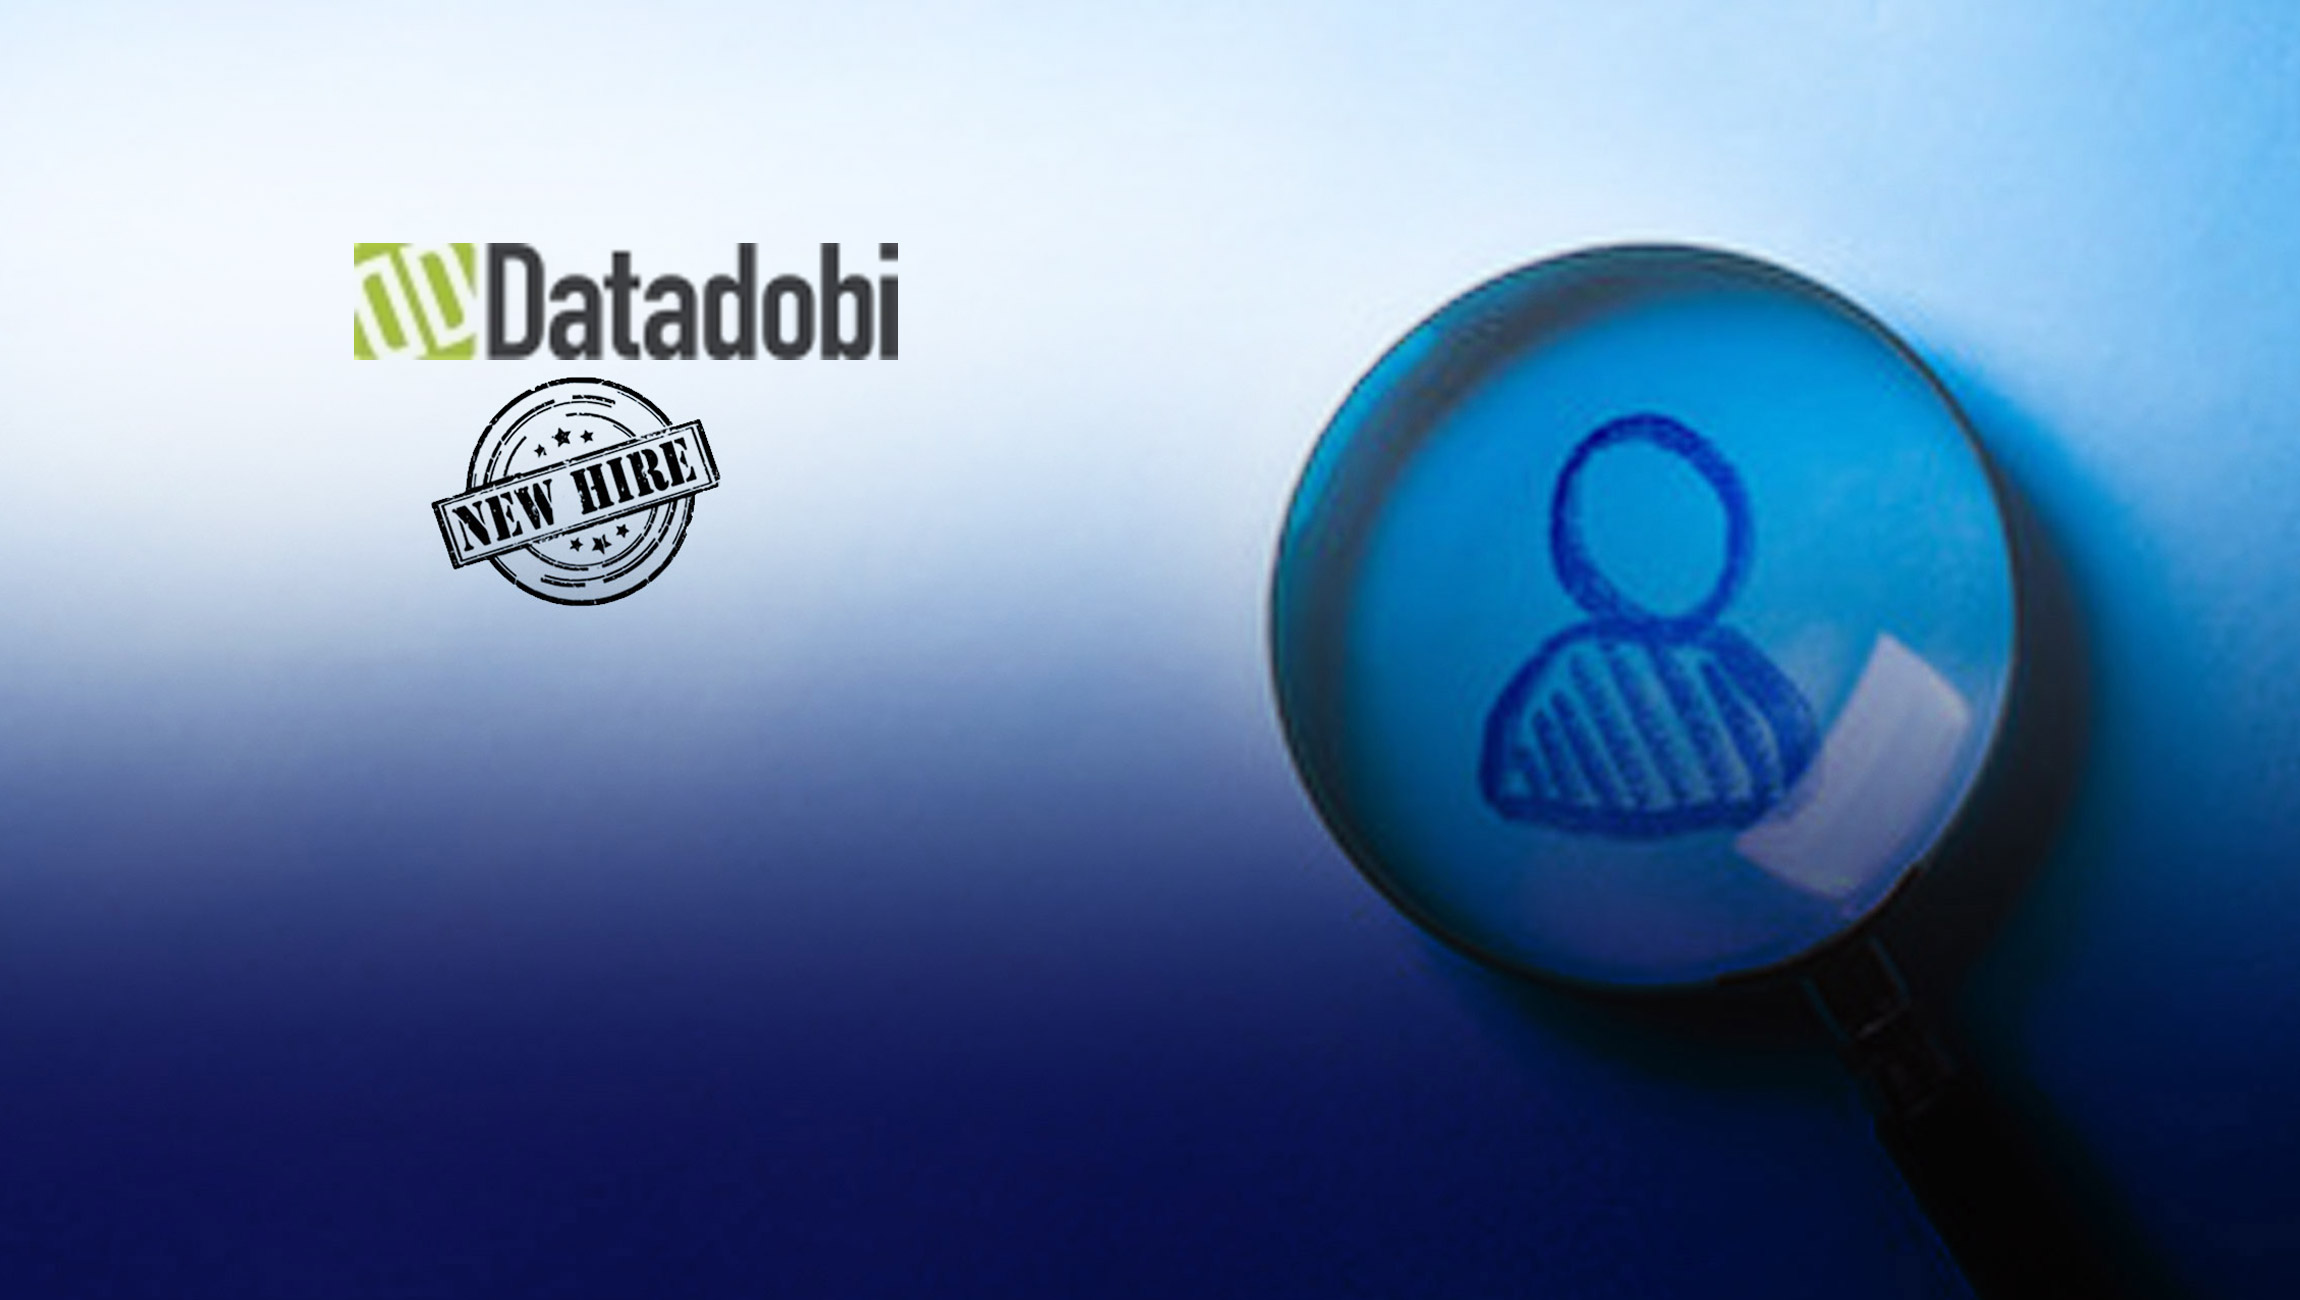 Datadobi Appoints Paul Repice To VP Of Sales For The Americas